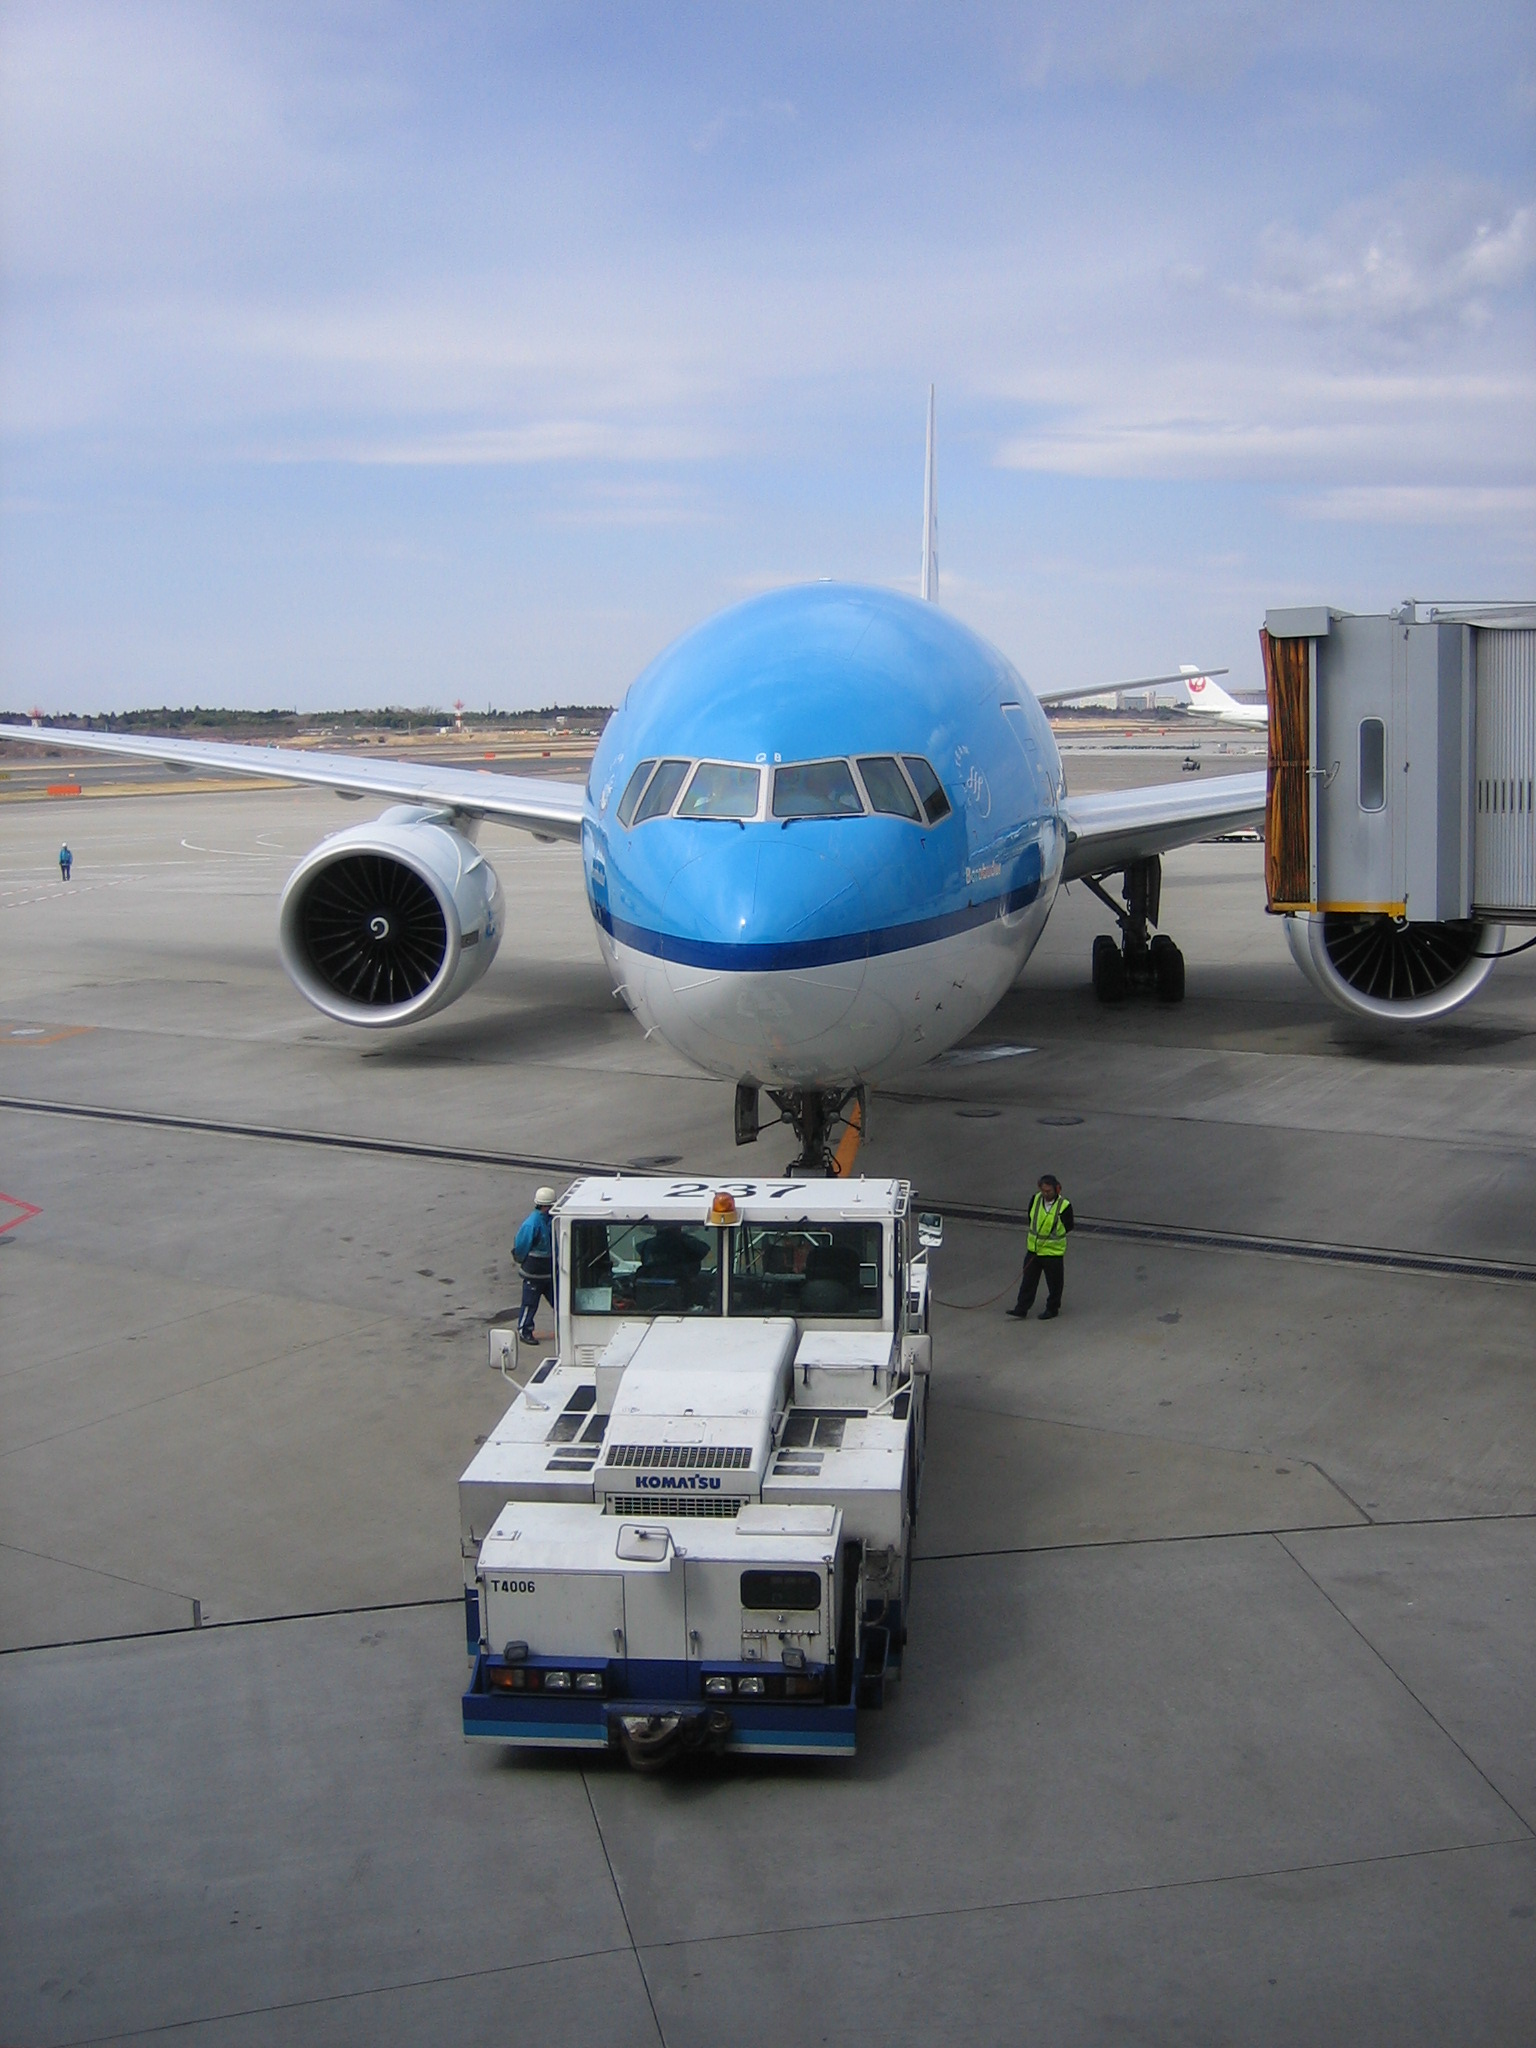 KLM 777 at gate with ramp worker on two way radio